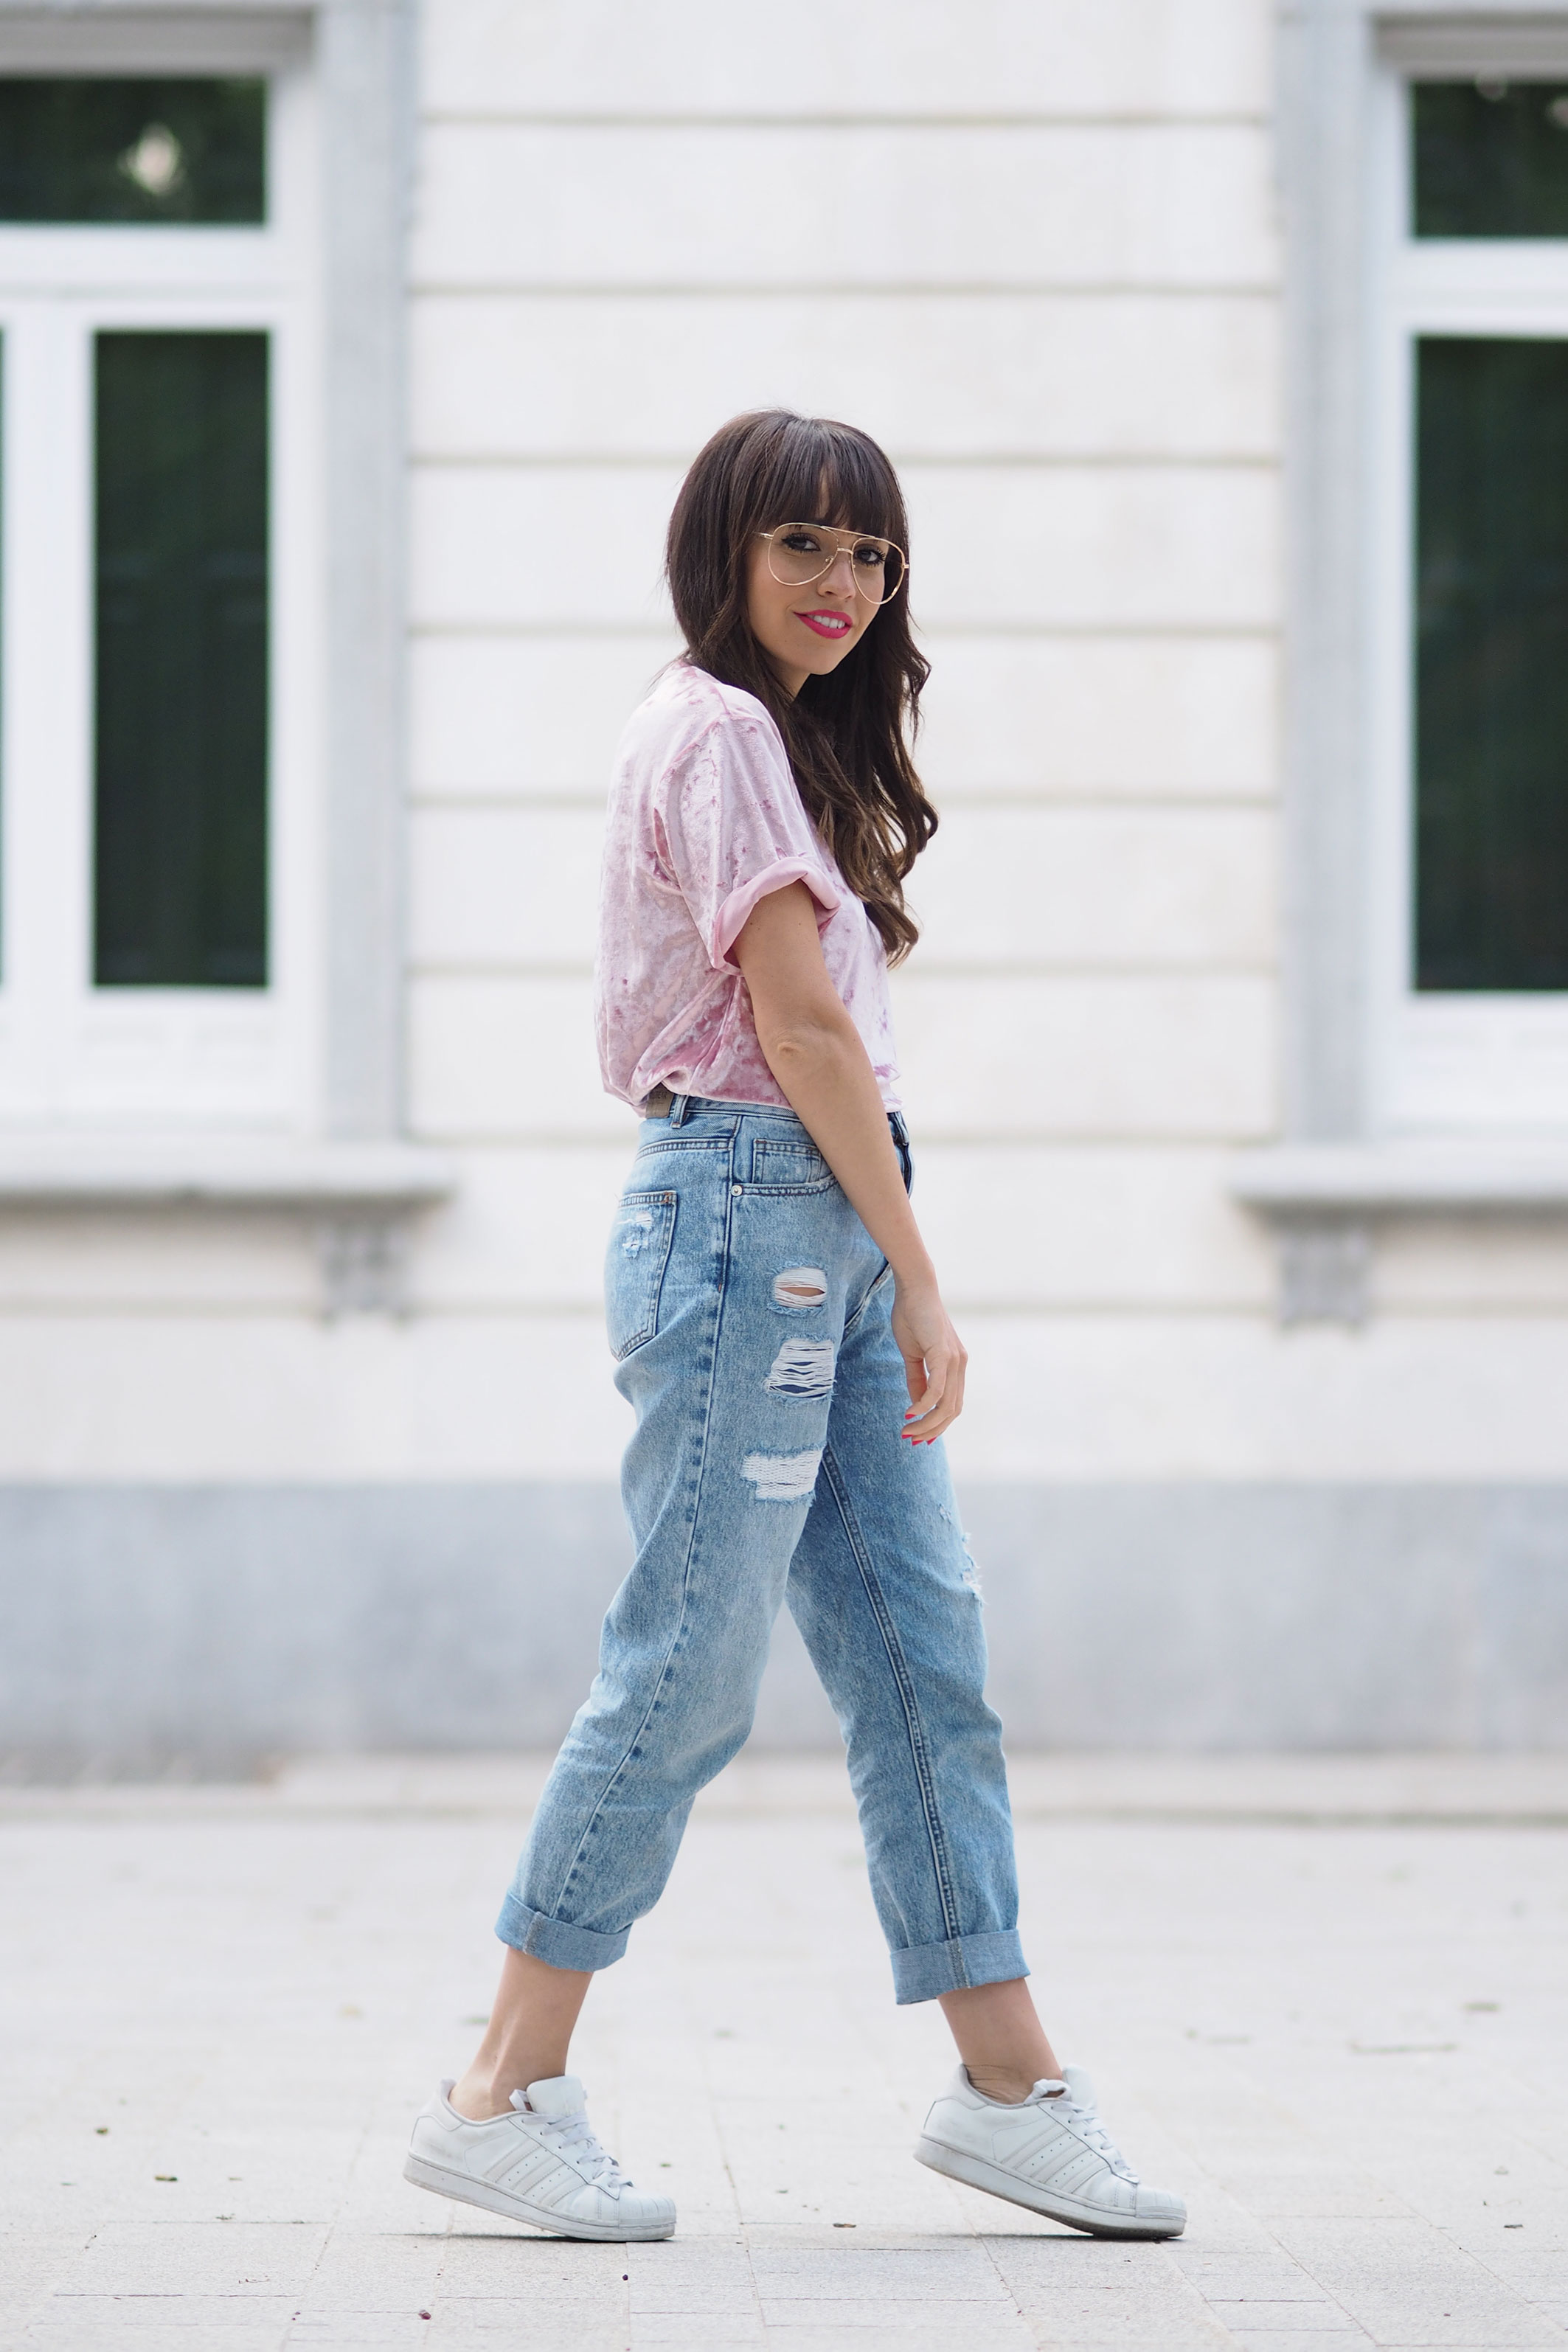 PINK VELVET TOP: SPRING OUTFIT